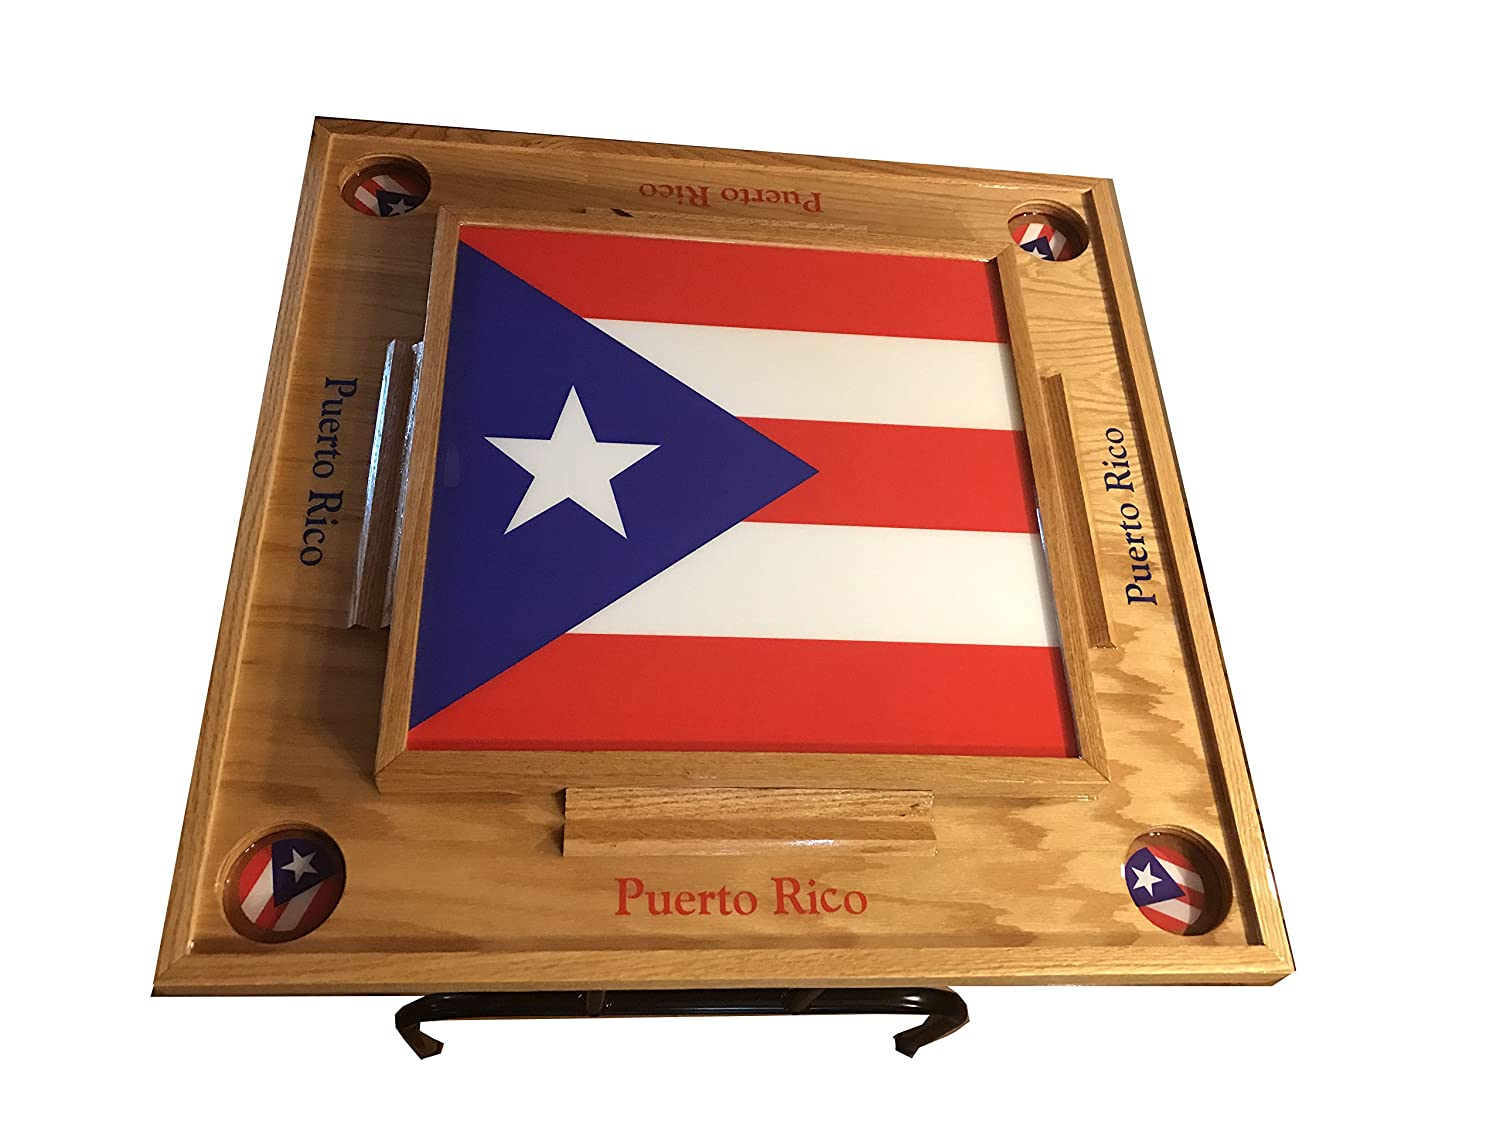 amazon com puerto rico domino table with the flag full